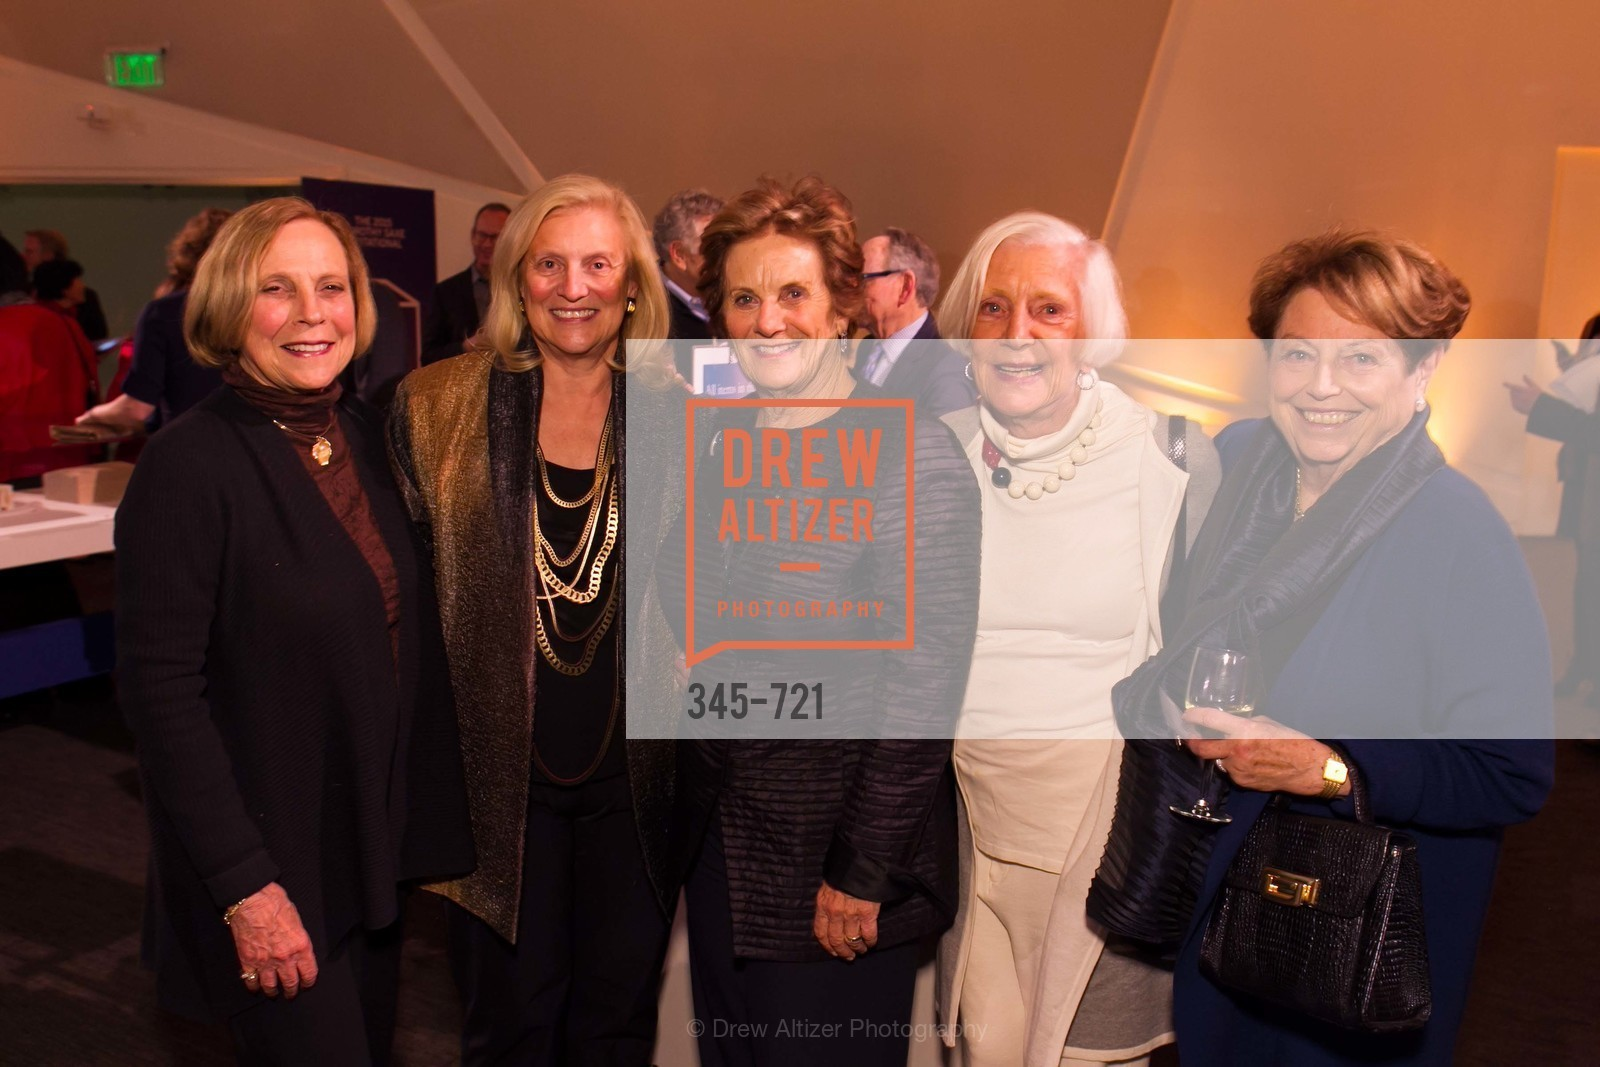 Sarah Lee Newman, Susan Hyatt, Carolyn Waldman, Sally Gradinger, Frances Berger, The 2015 Dorothy Saxe Invitational Celebration at the JEWISH MUSEUM, US, May 13th, 2015,Drew Altizer, Drew Altizer Photography, full-service agency, private events, San Francisco photographer, photographer california